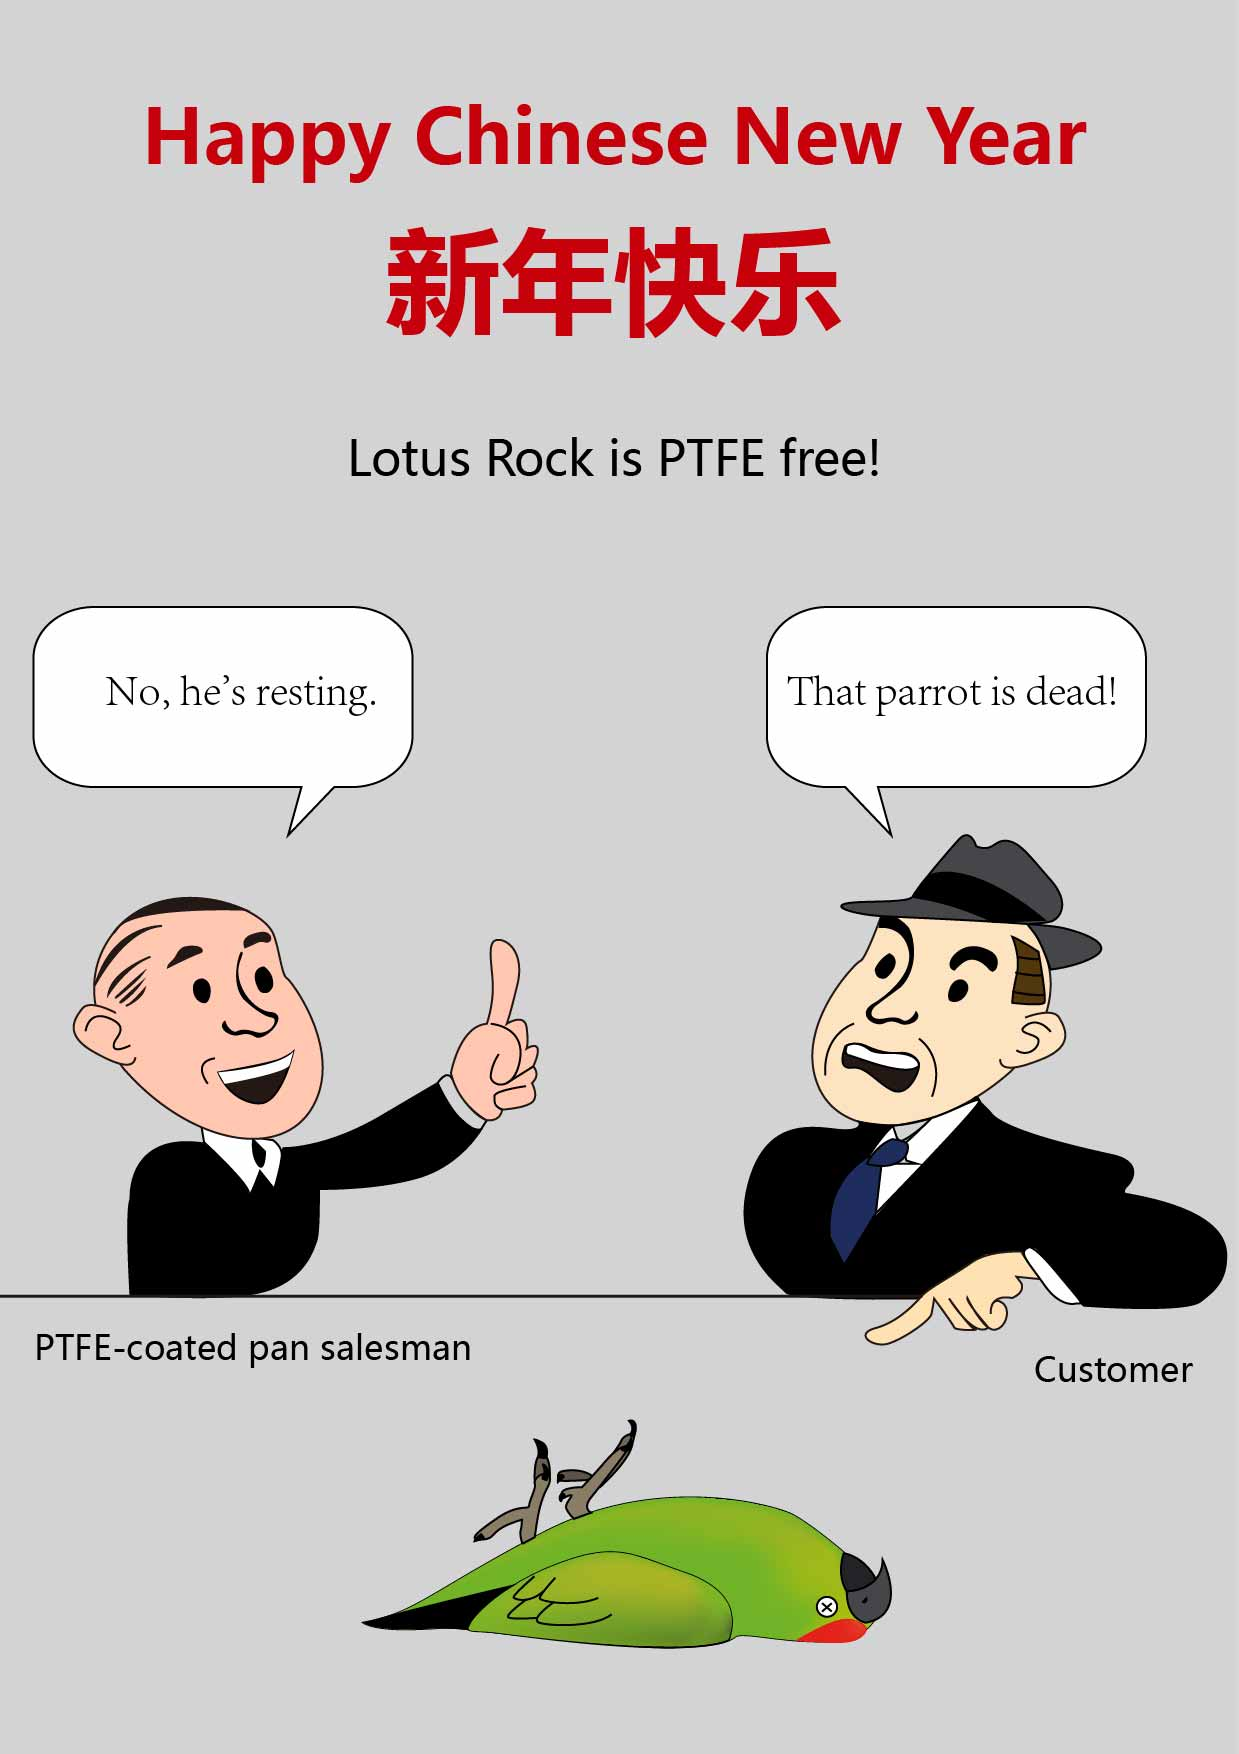 Lotus Rock is PTFE free!